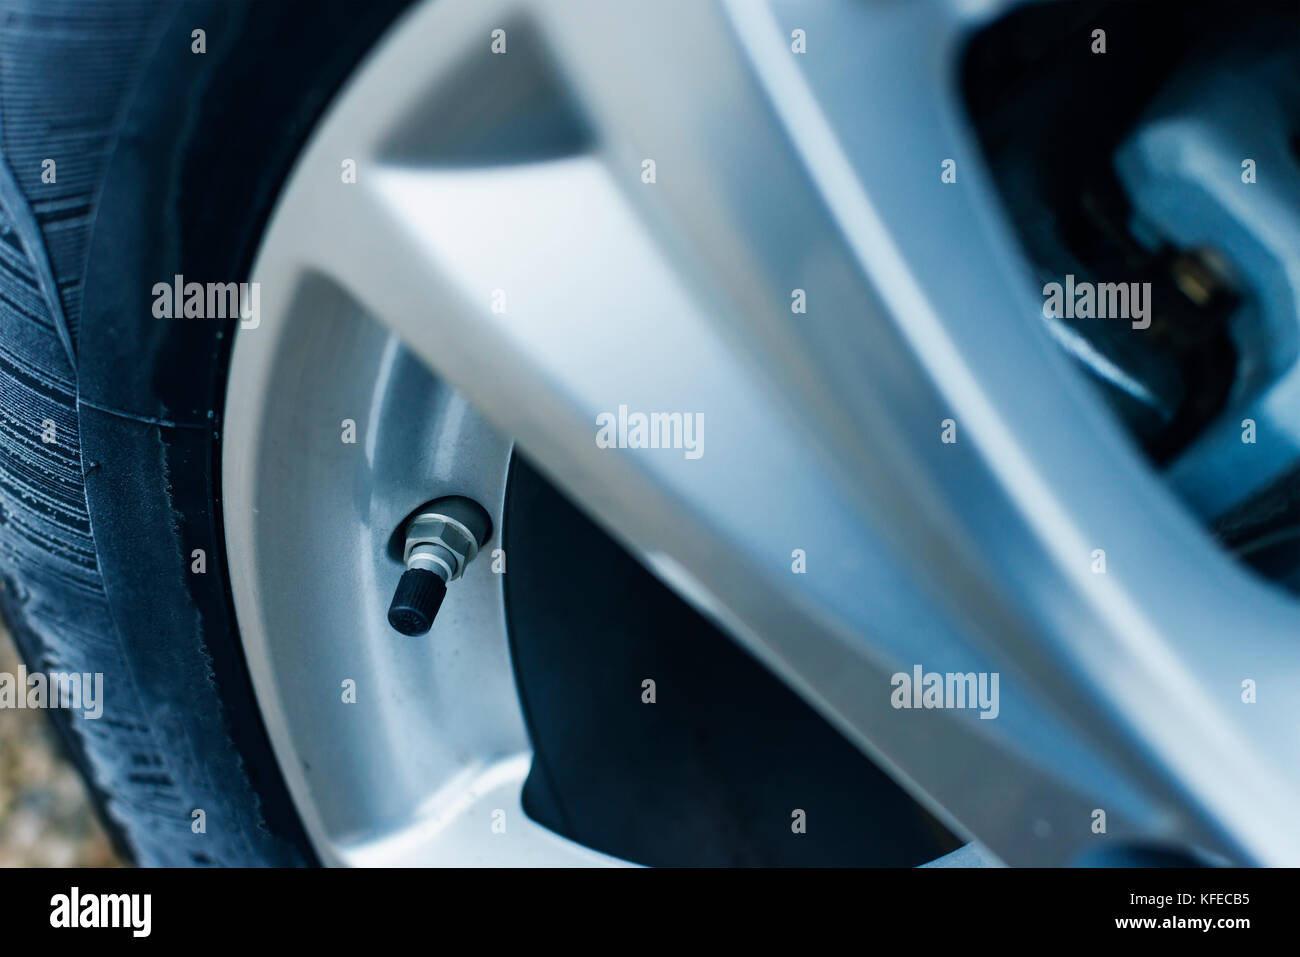 Spoke Nipple Stock Photos & Spoke Nipple Stock Images - Alamy